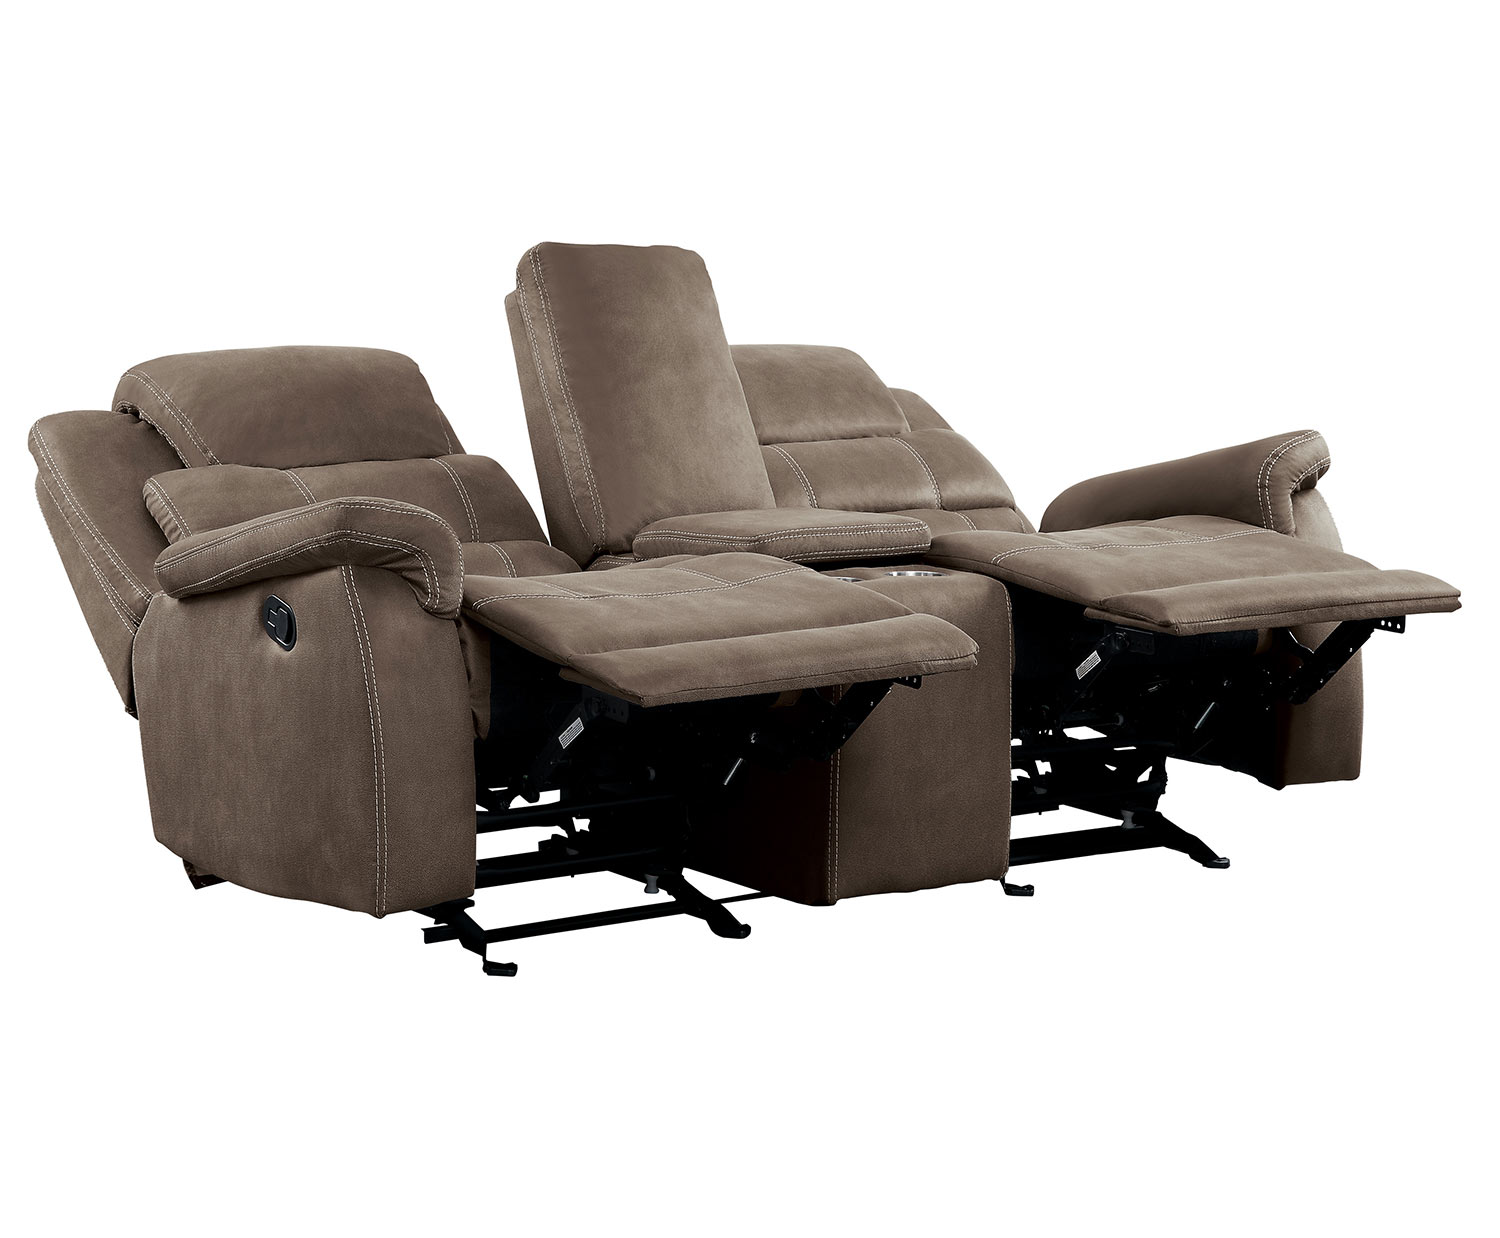 Homelegance Shola Power Double Reclining Love Seat with Center Console and Power Headrests - Brown